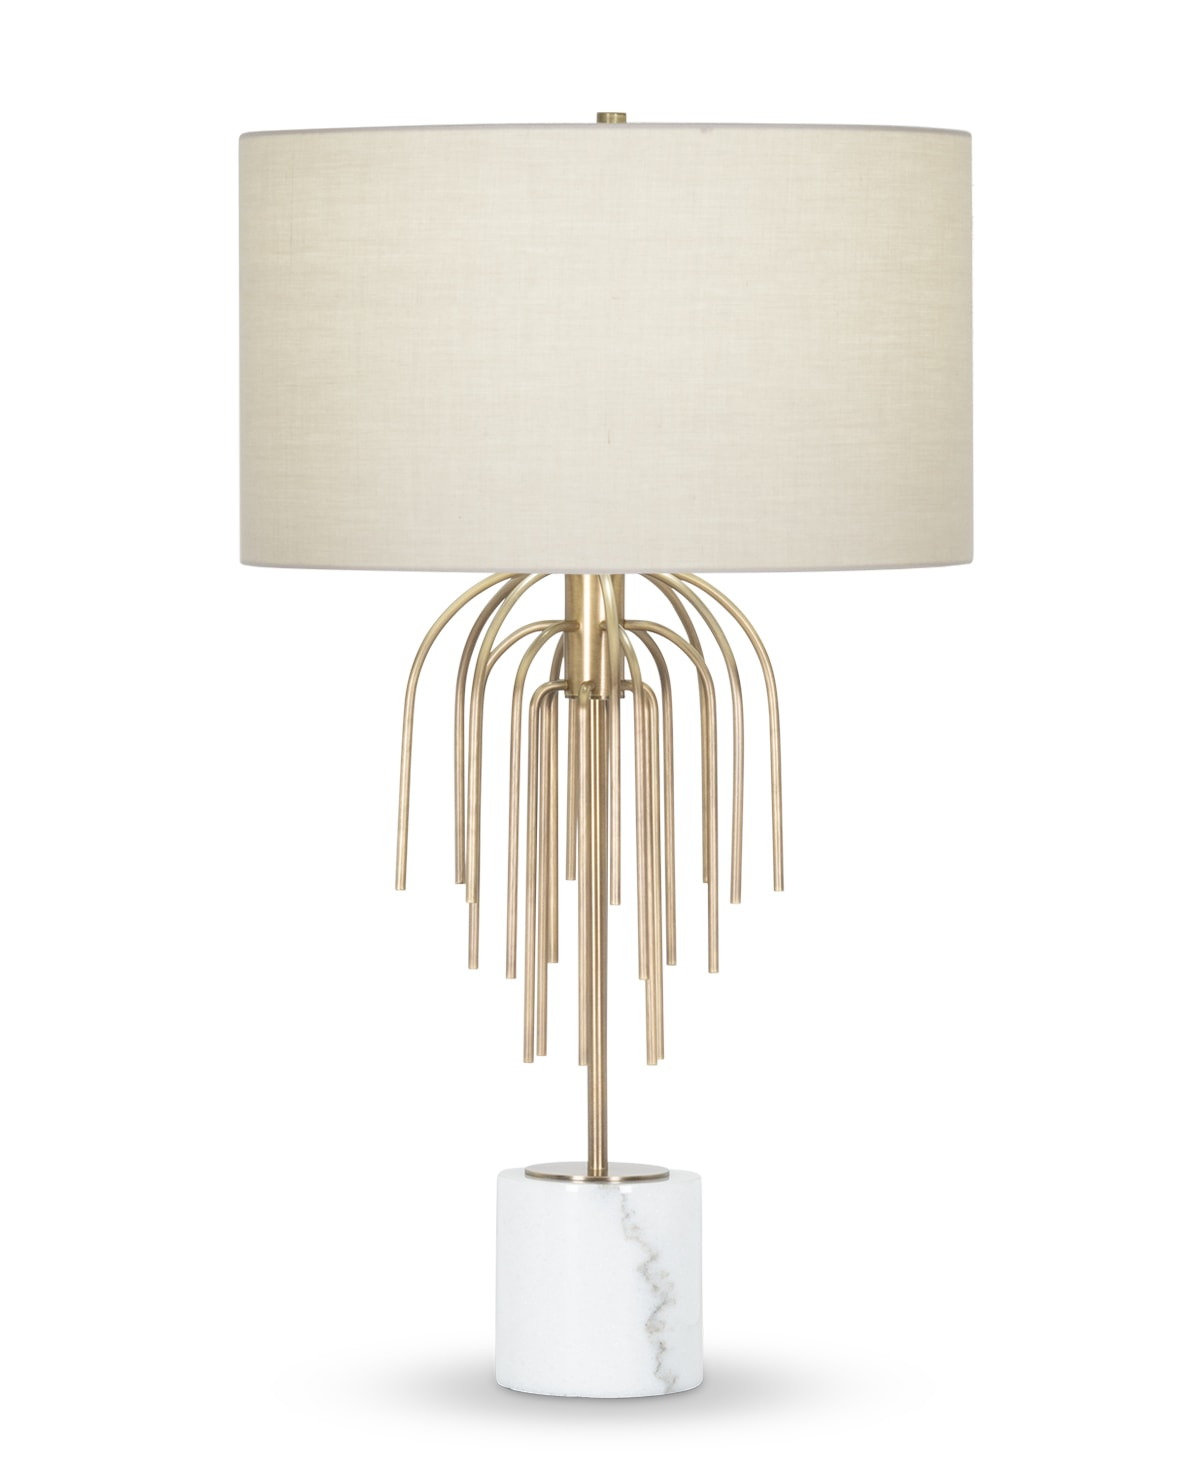 FlowDecor Powell Table Lamp in white marble and metal with antique brass finish and beige cotton drum shade (# 4439)